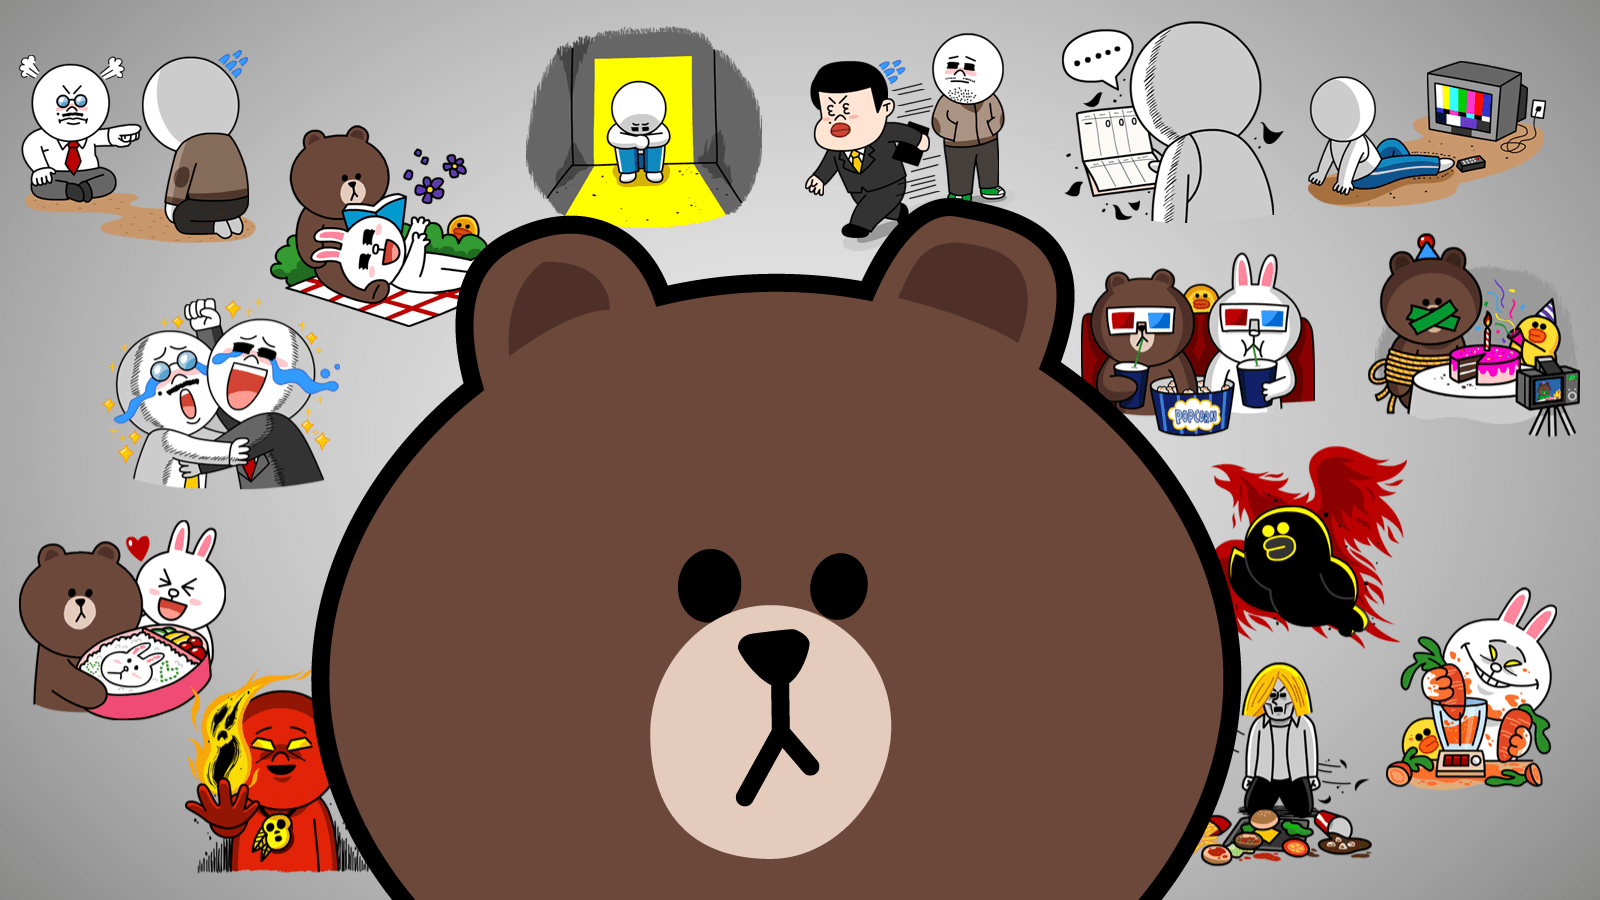 Cute Chat Wallpaper For Whatsapp The Secret Language Of Line Stickers Techcrunch